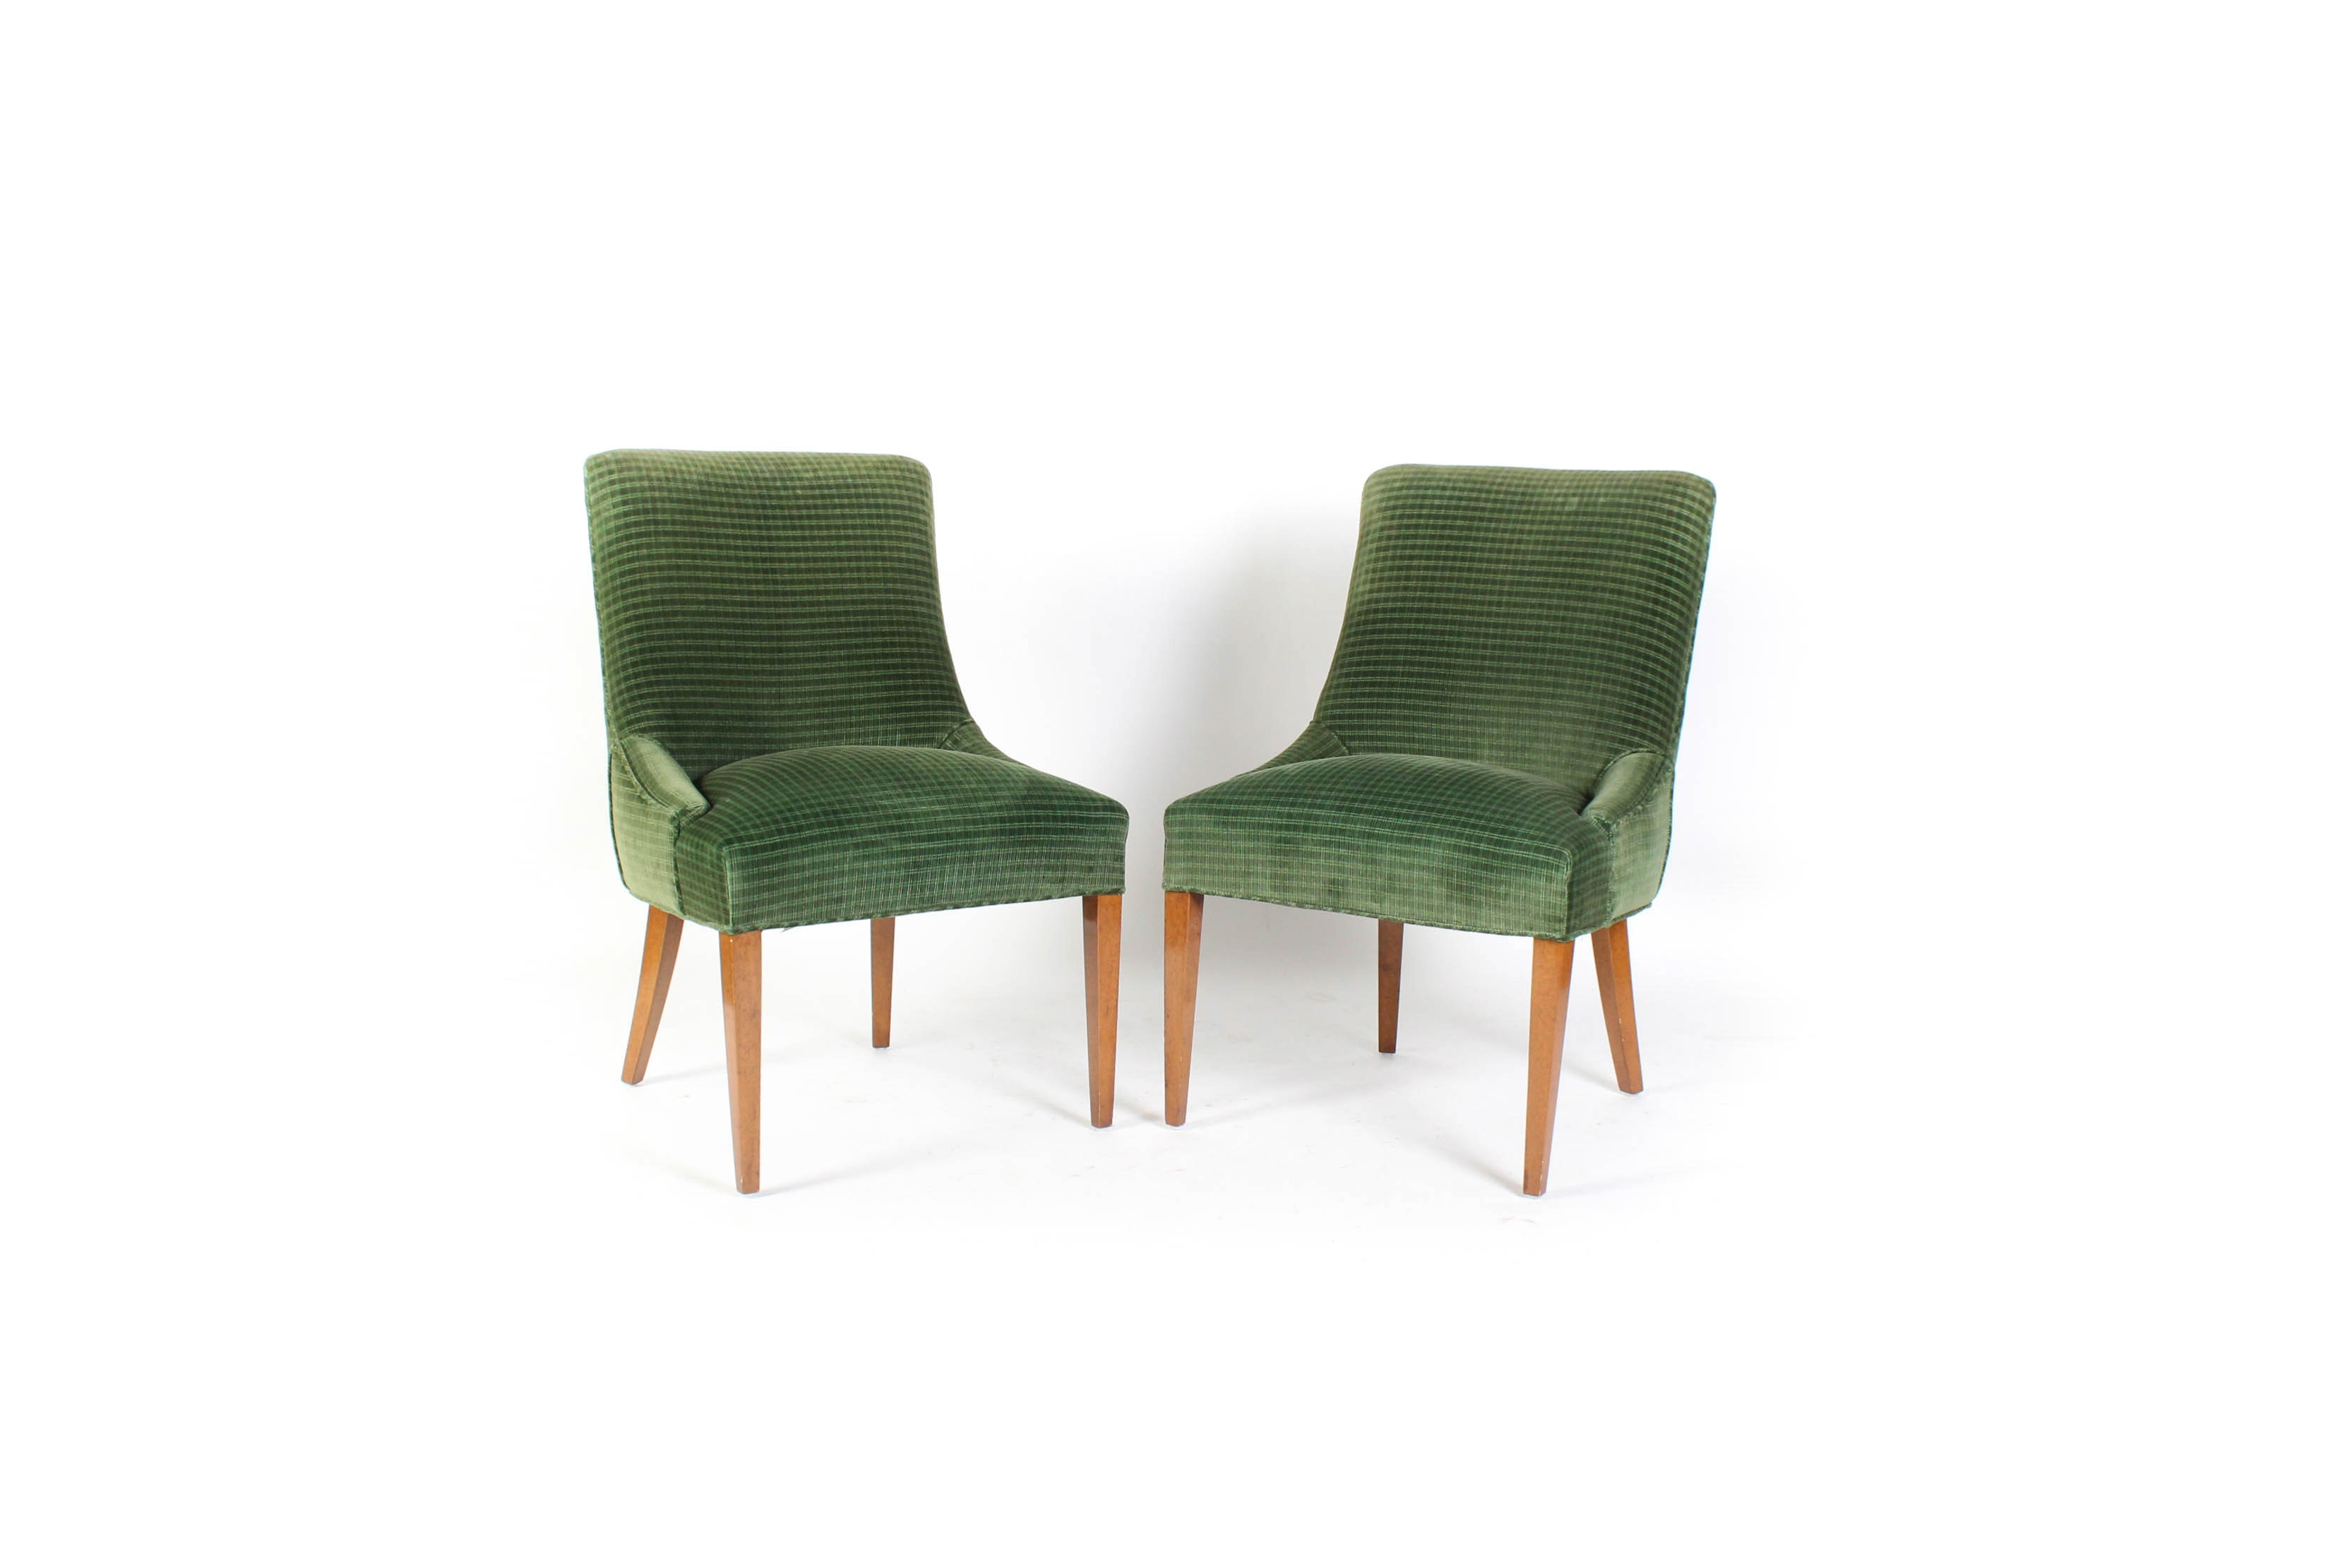 Pair of Green Upholstered Side Chairs